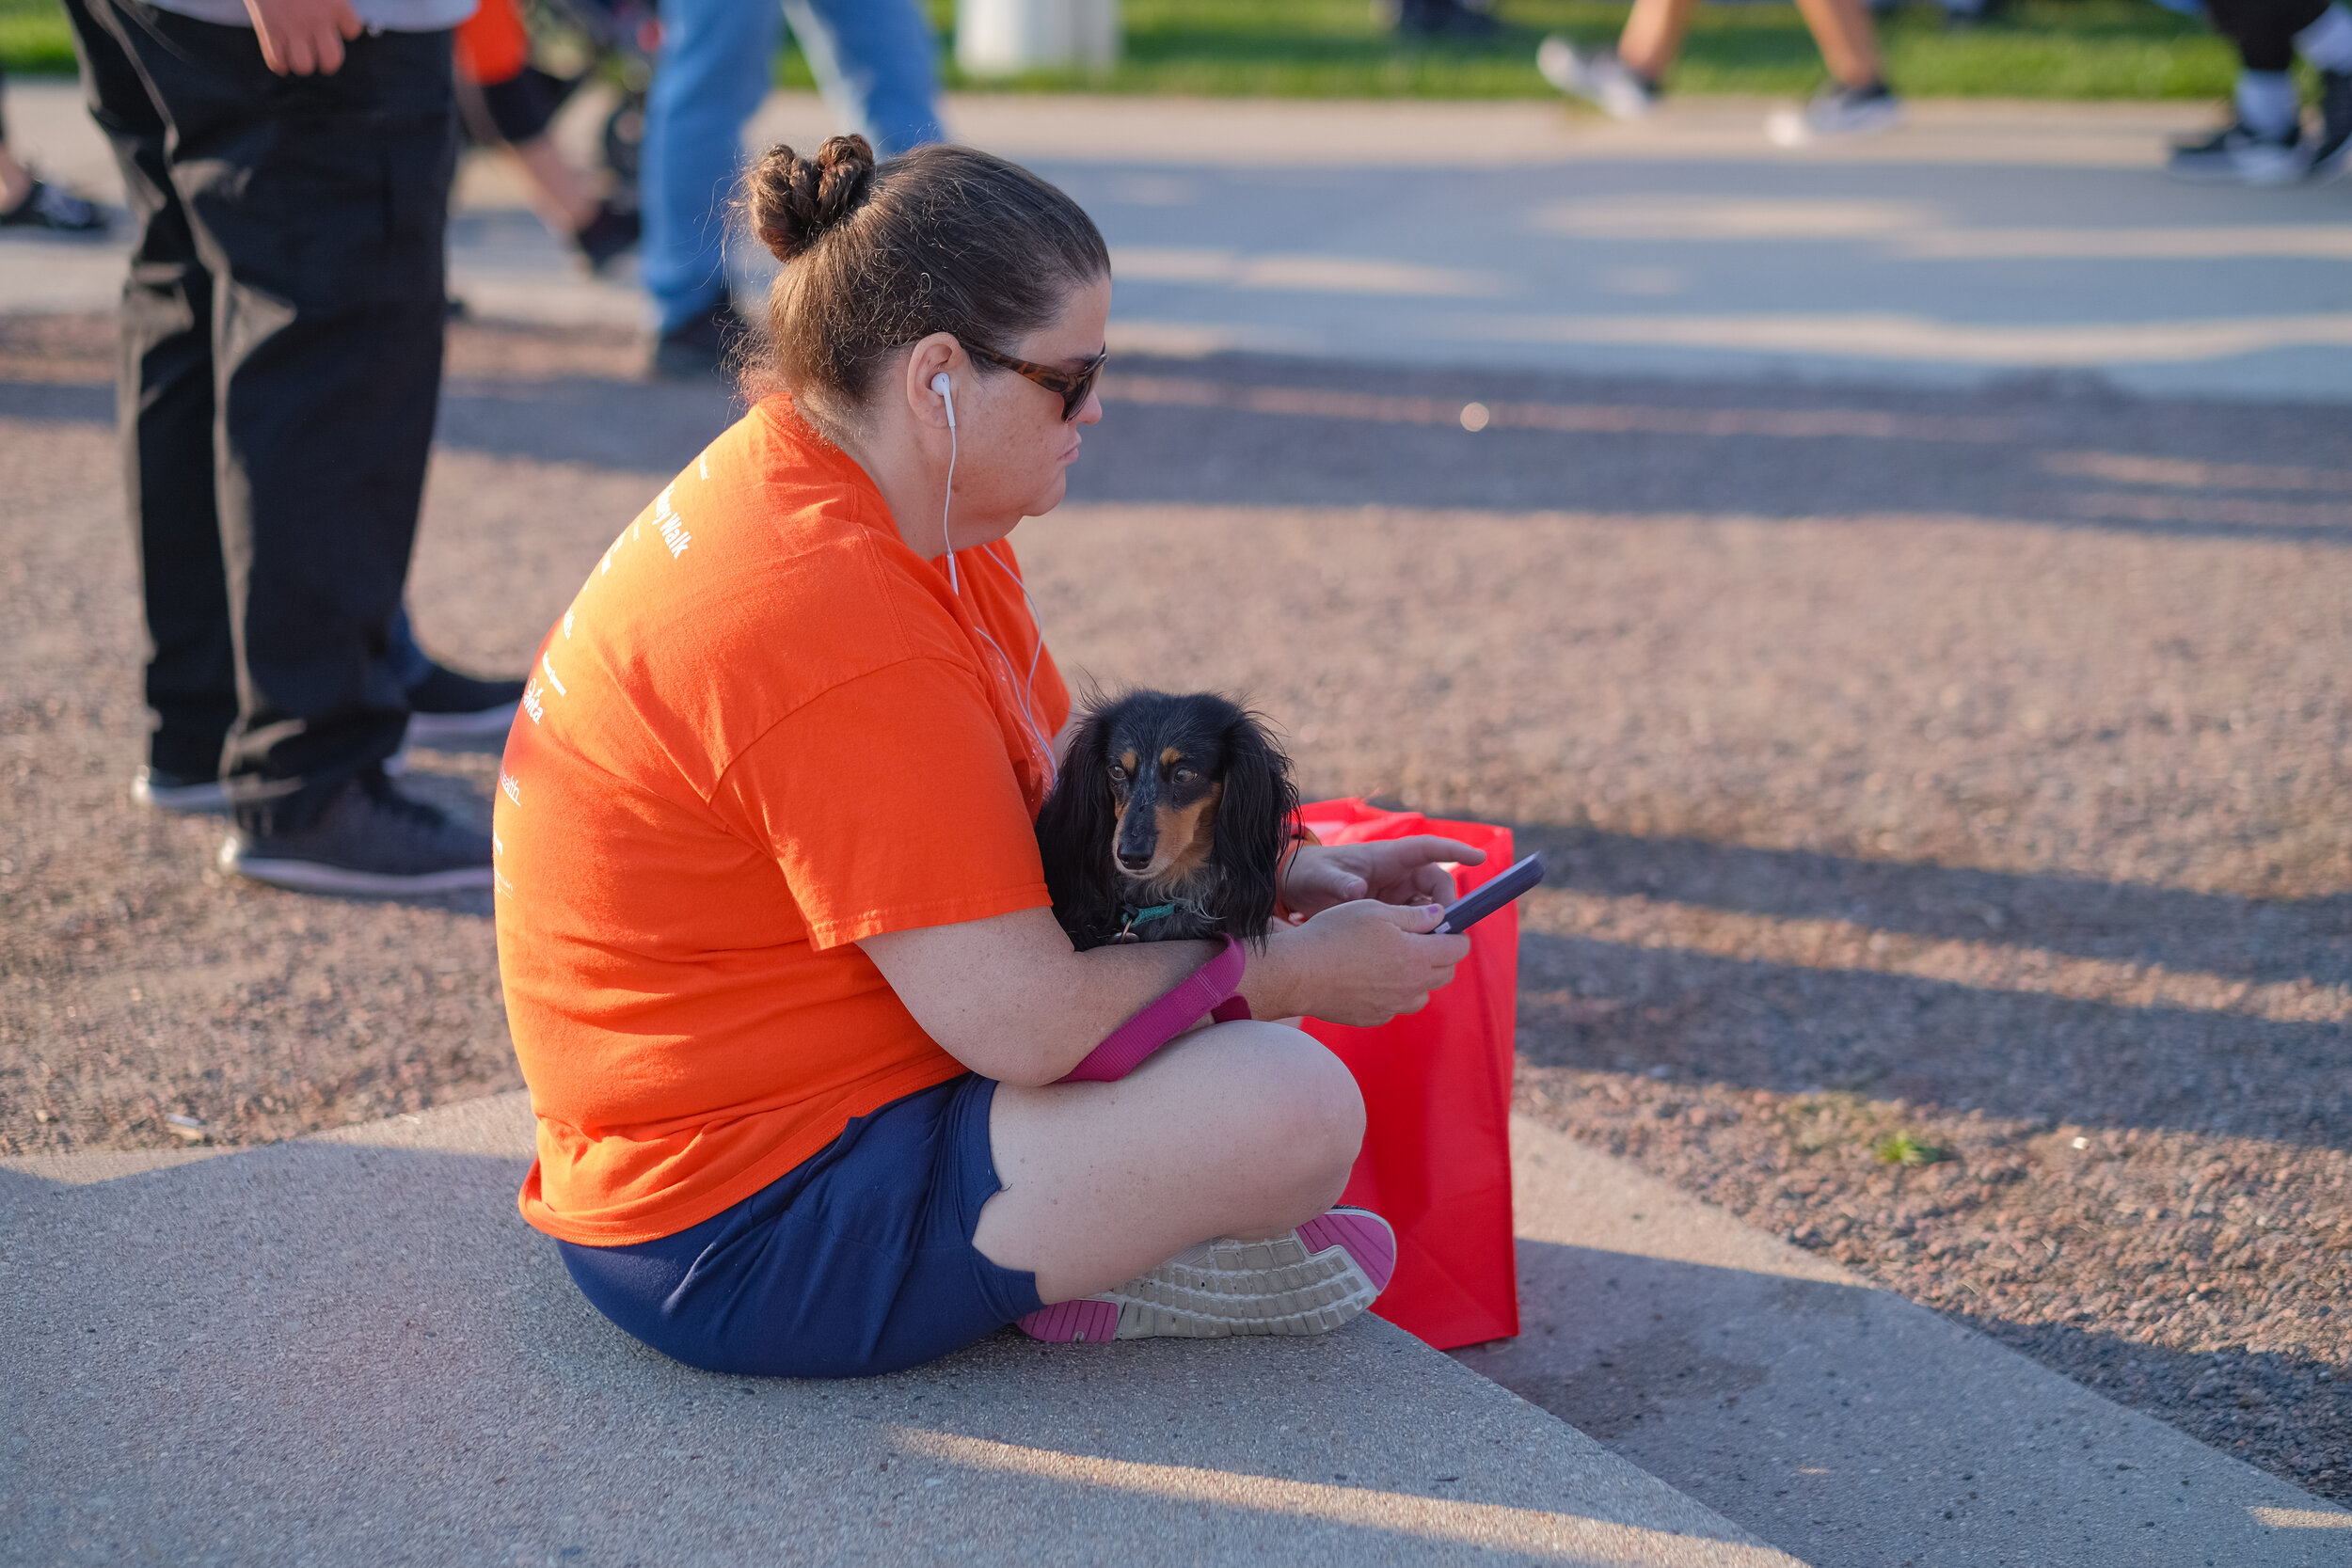 Denver Kidney Walk-21.jpg